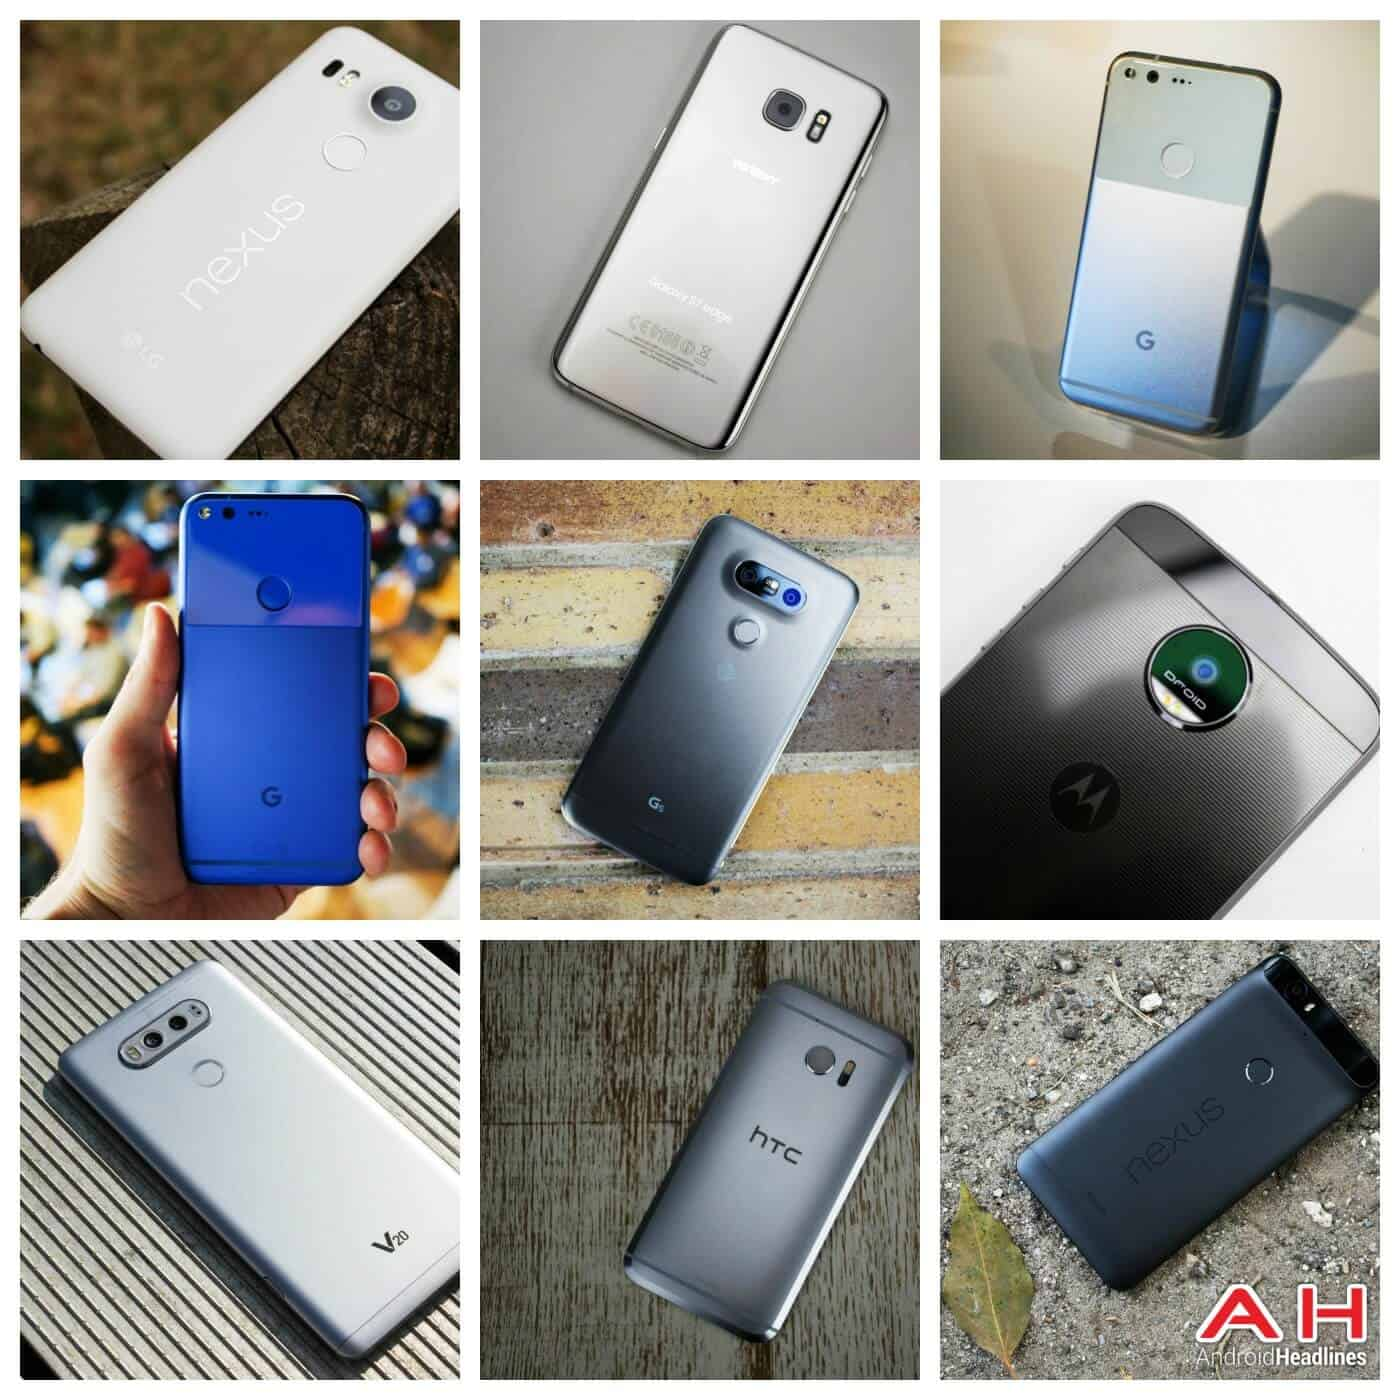 pixel-xl-vs-pixel-vs-nexus-6p-vs-galaxy-s7-edge-vs-lg-g5-vs-moto-z-force